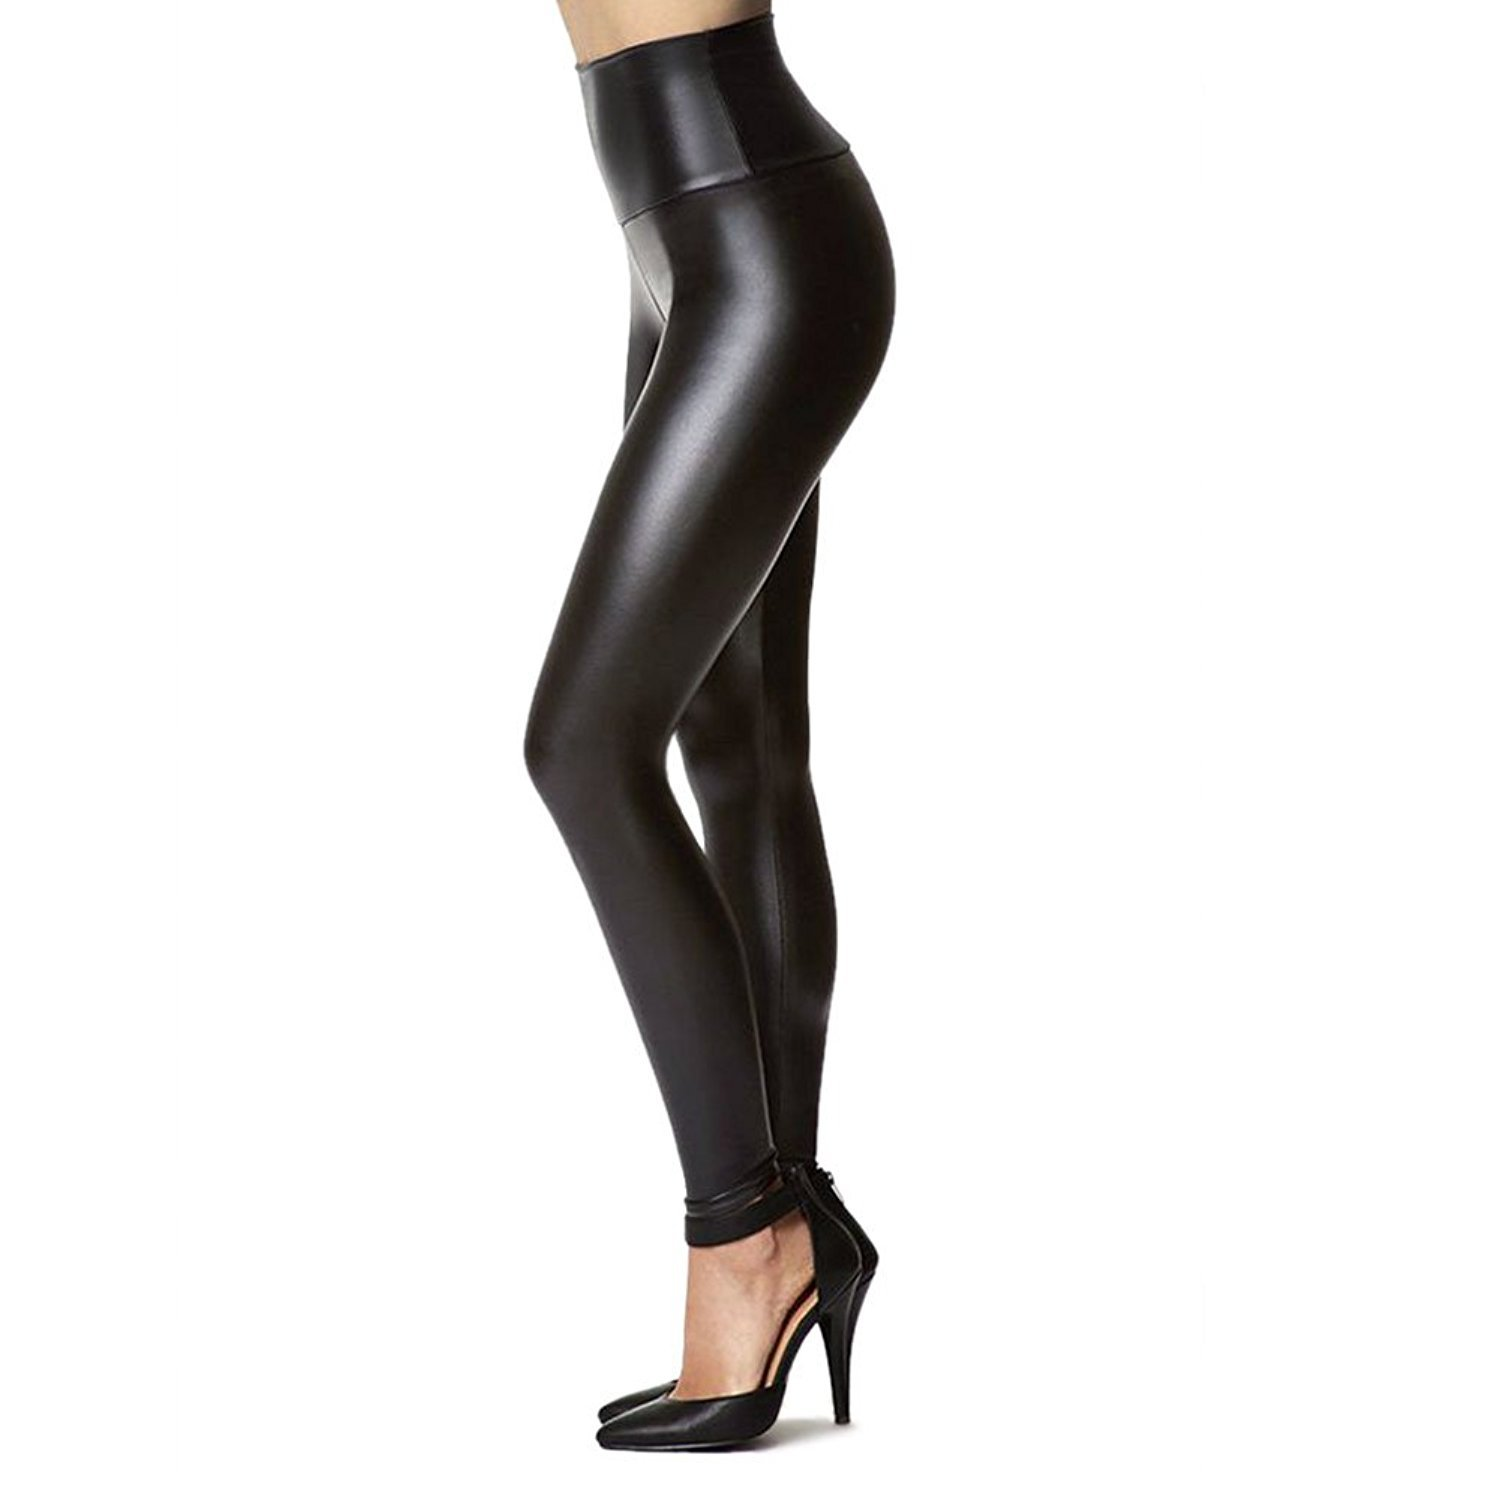 7a29d30127a099 Pls check your size in the Size Chart before buying to avoid returns.  Features: Slim Fit Shiny Skinny Metallic Full Length Stretchy Wet Look ...